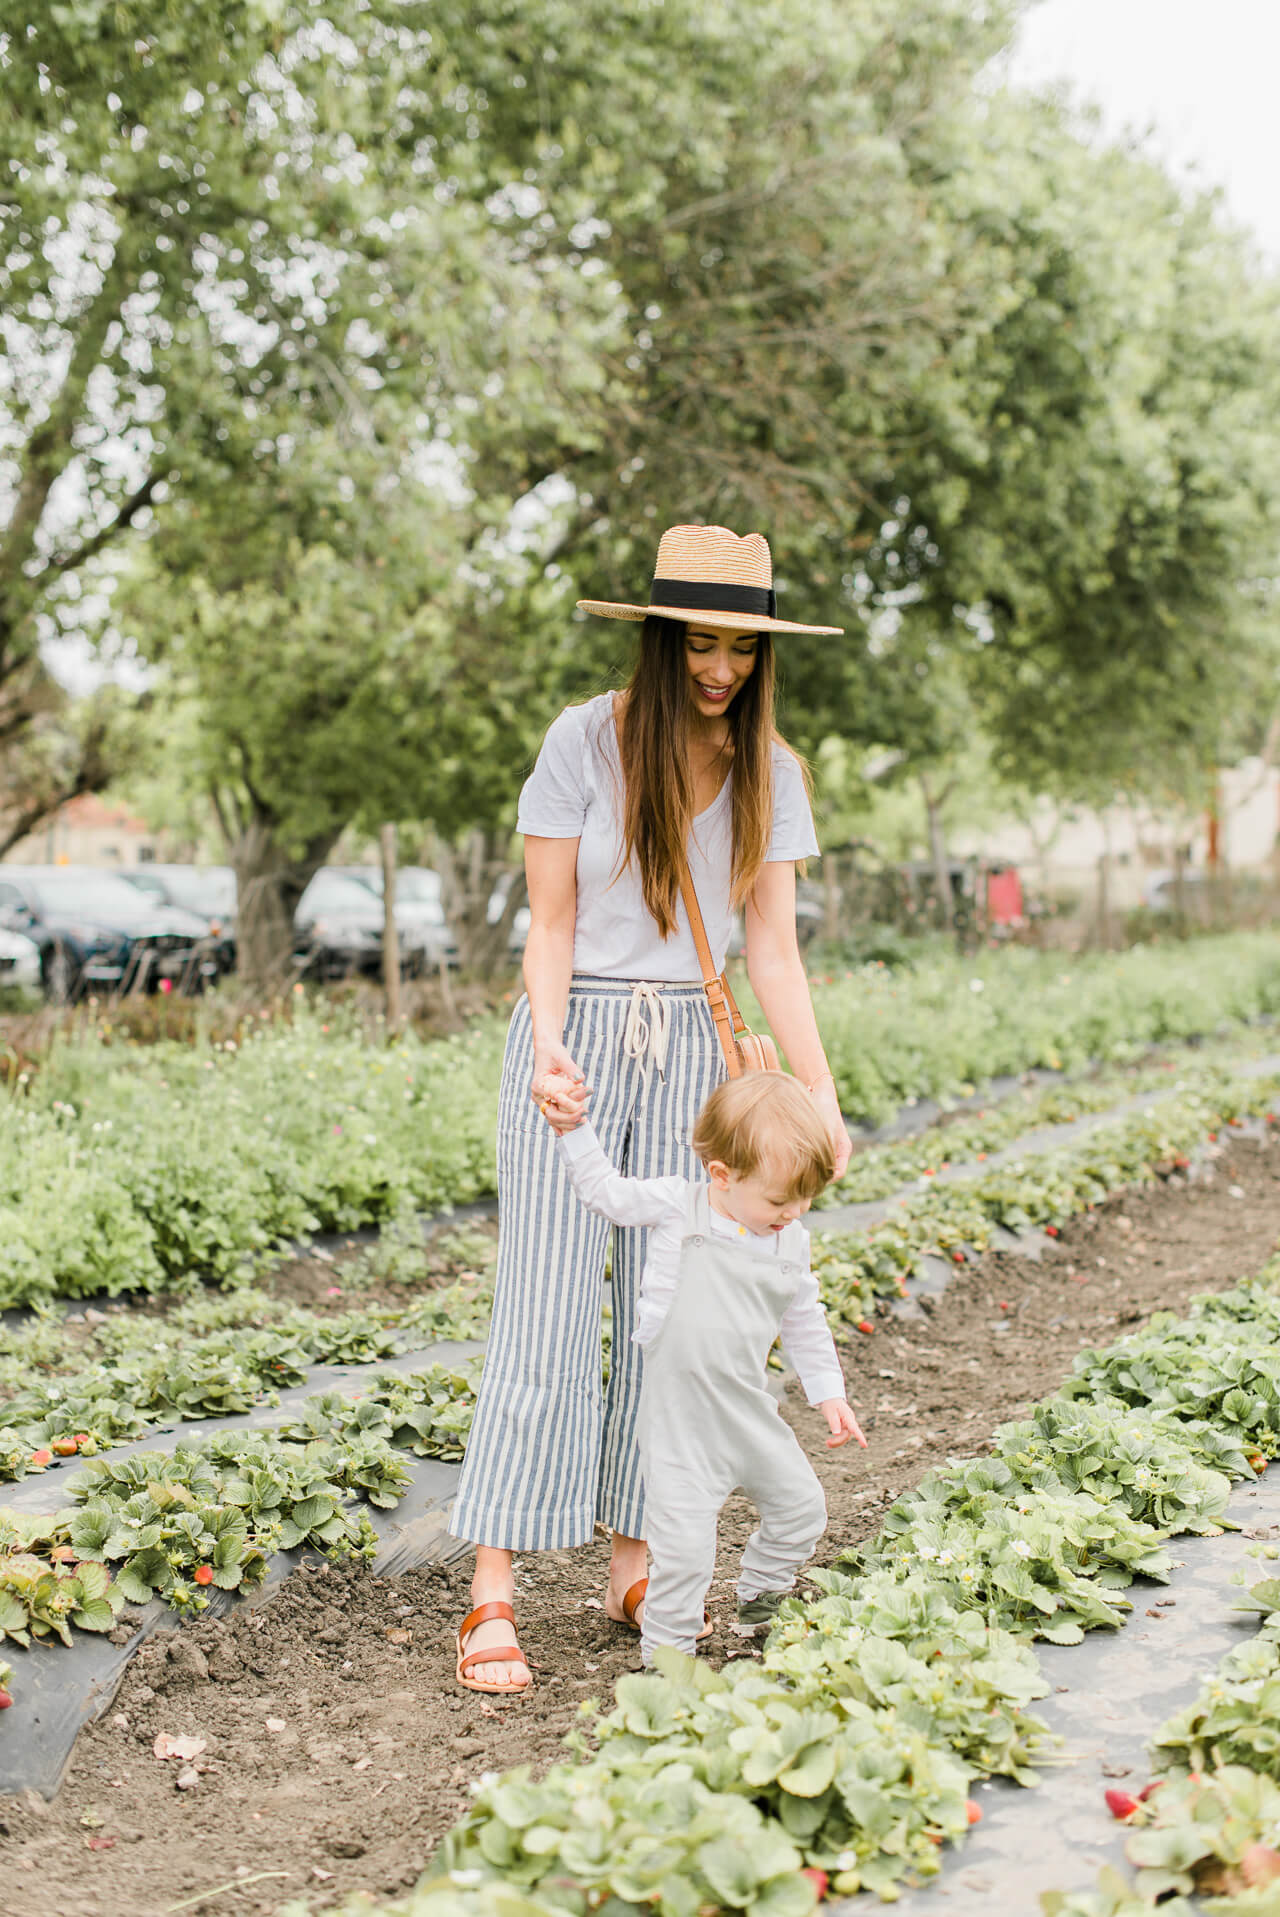 The perfect spring outfit plus the perfect spring outing at the farm with my little one!